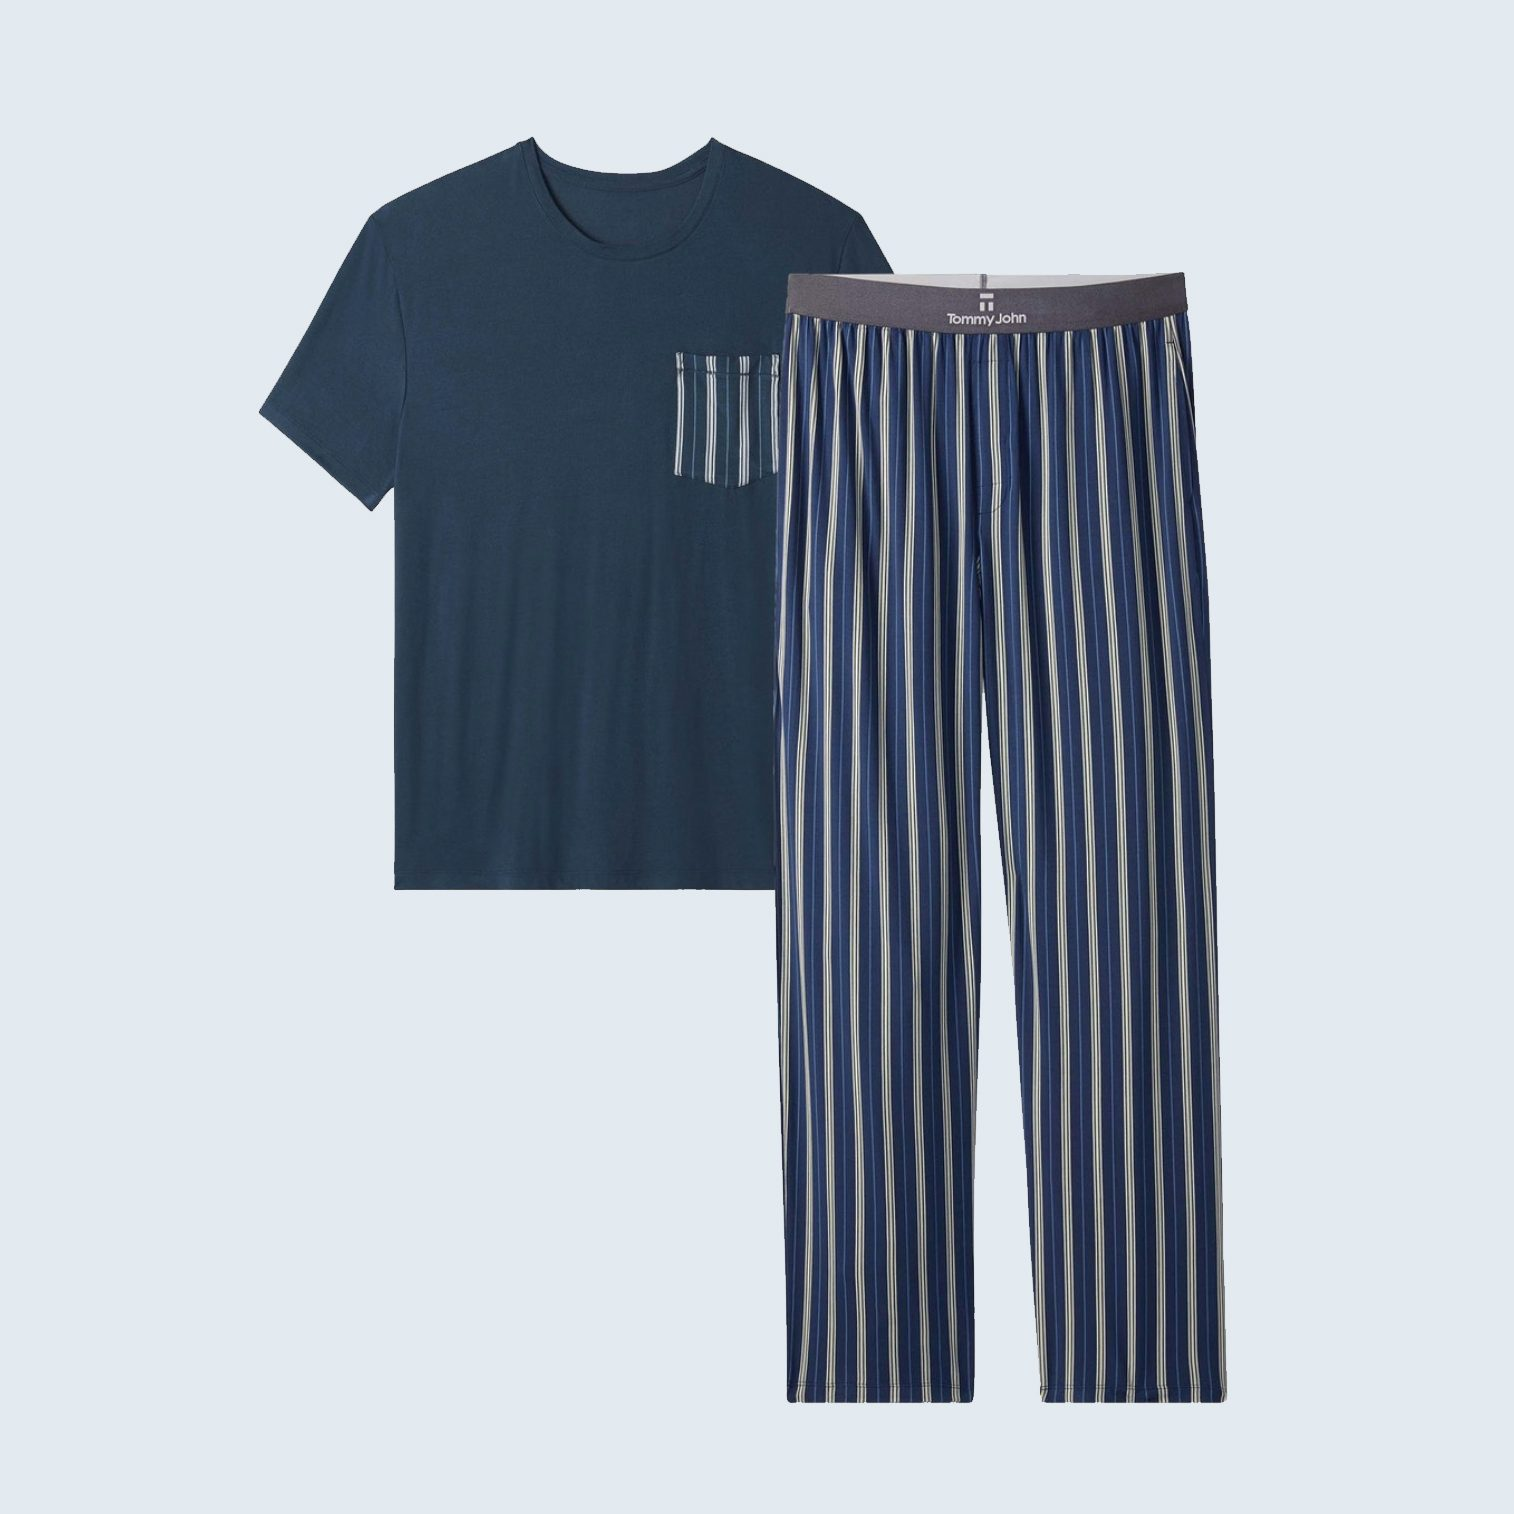 Tommy John Second Skin Pajama Pocket Tee and Pant Pack